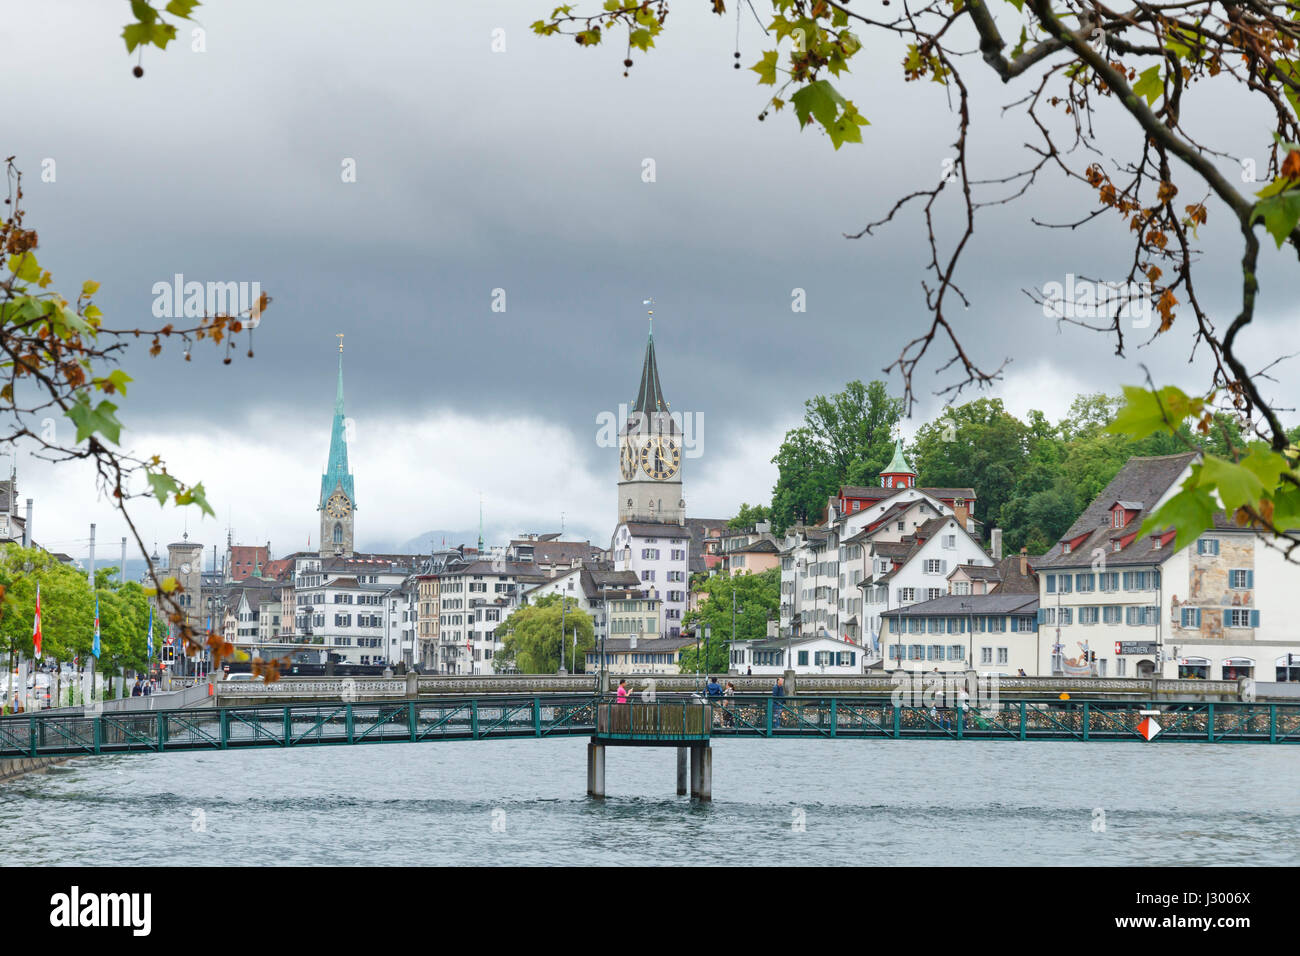 The river Limmat flowing from Lake Zurich through Zurich City, Switzerland - Stock Image